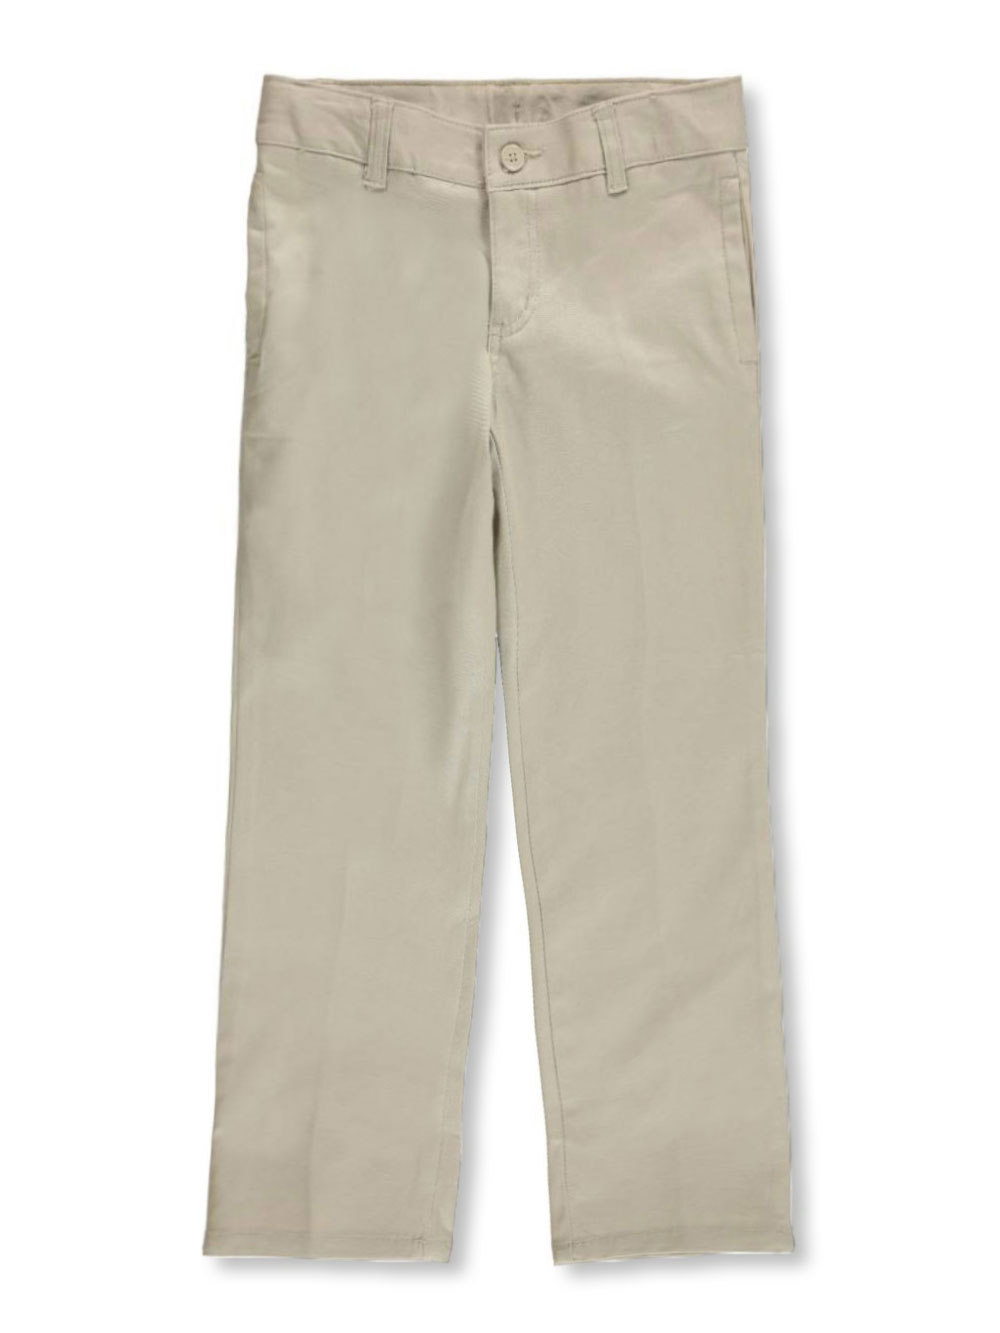 Size 8 Slim Pants for Boys